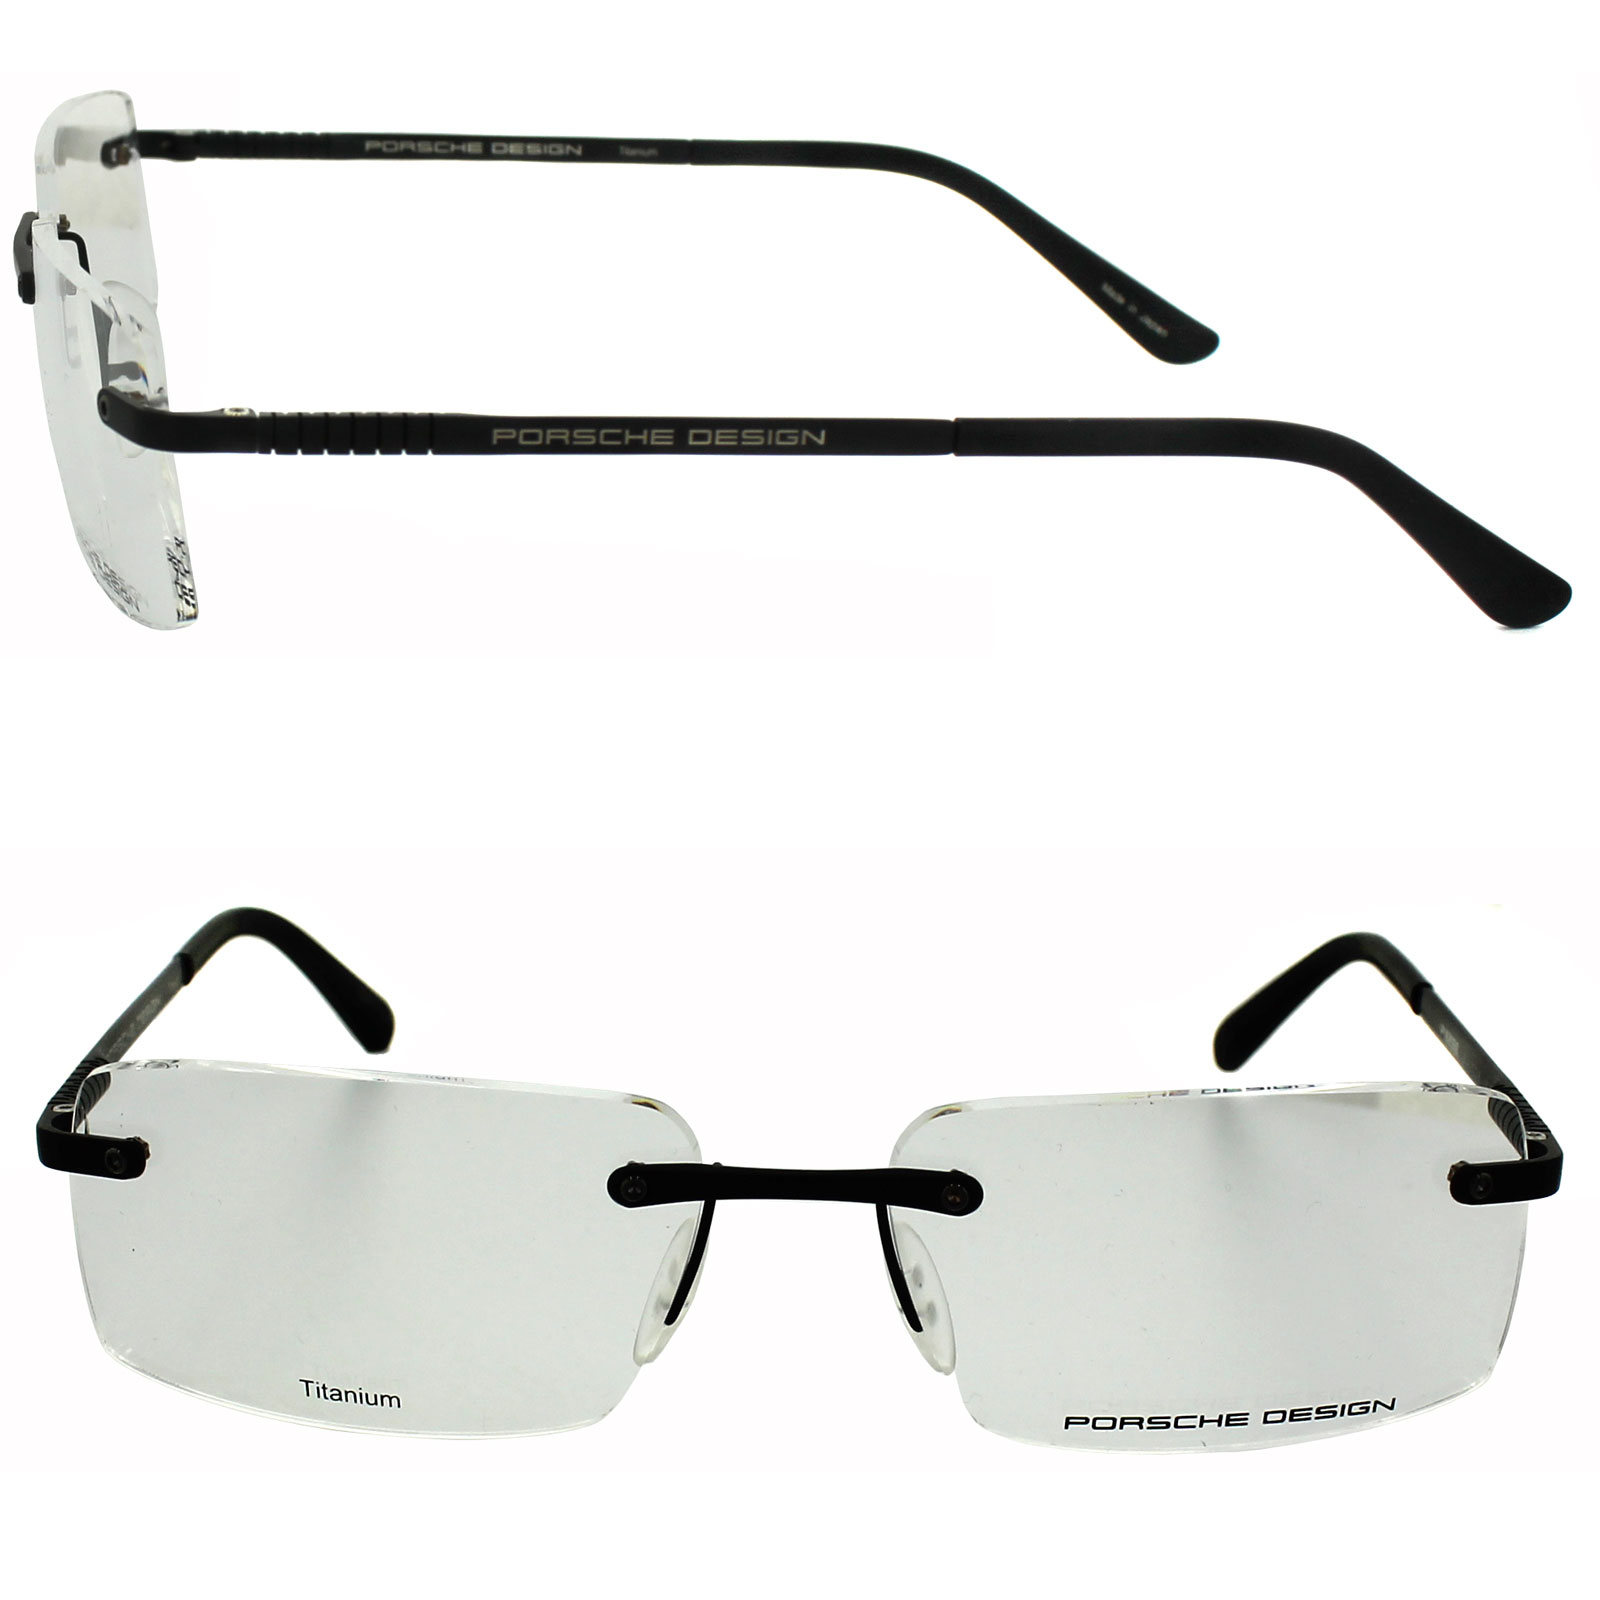 Porsche Design Glasses Frame : Cheap Porsche Design P8238 Glasses Frames - Discounted ...